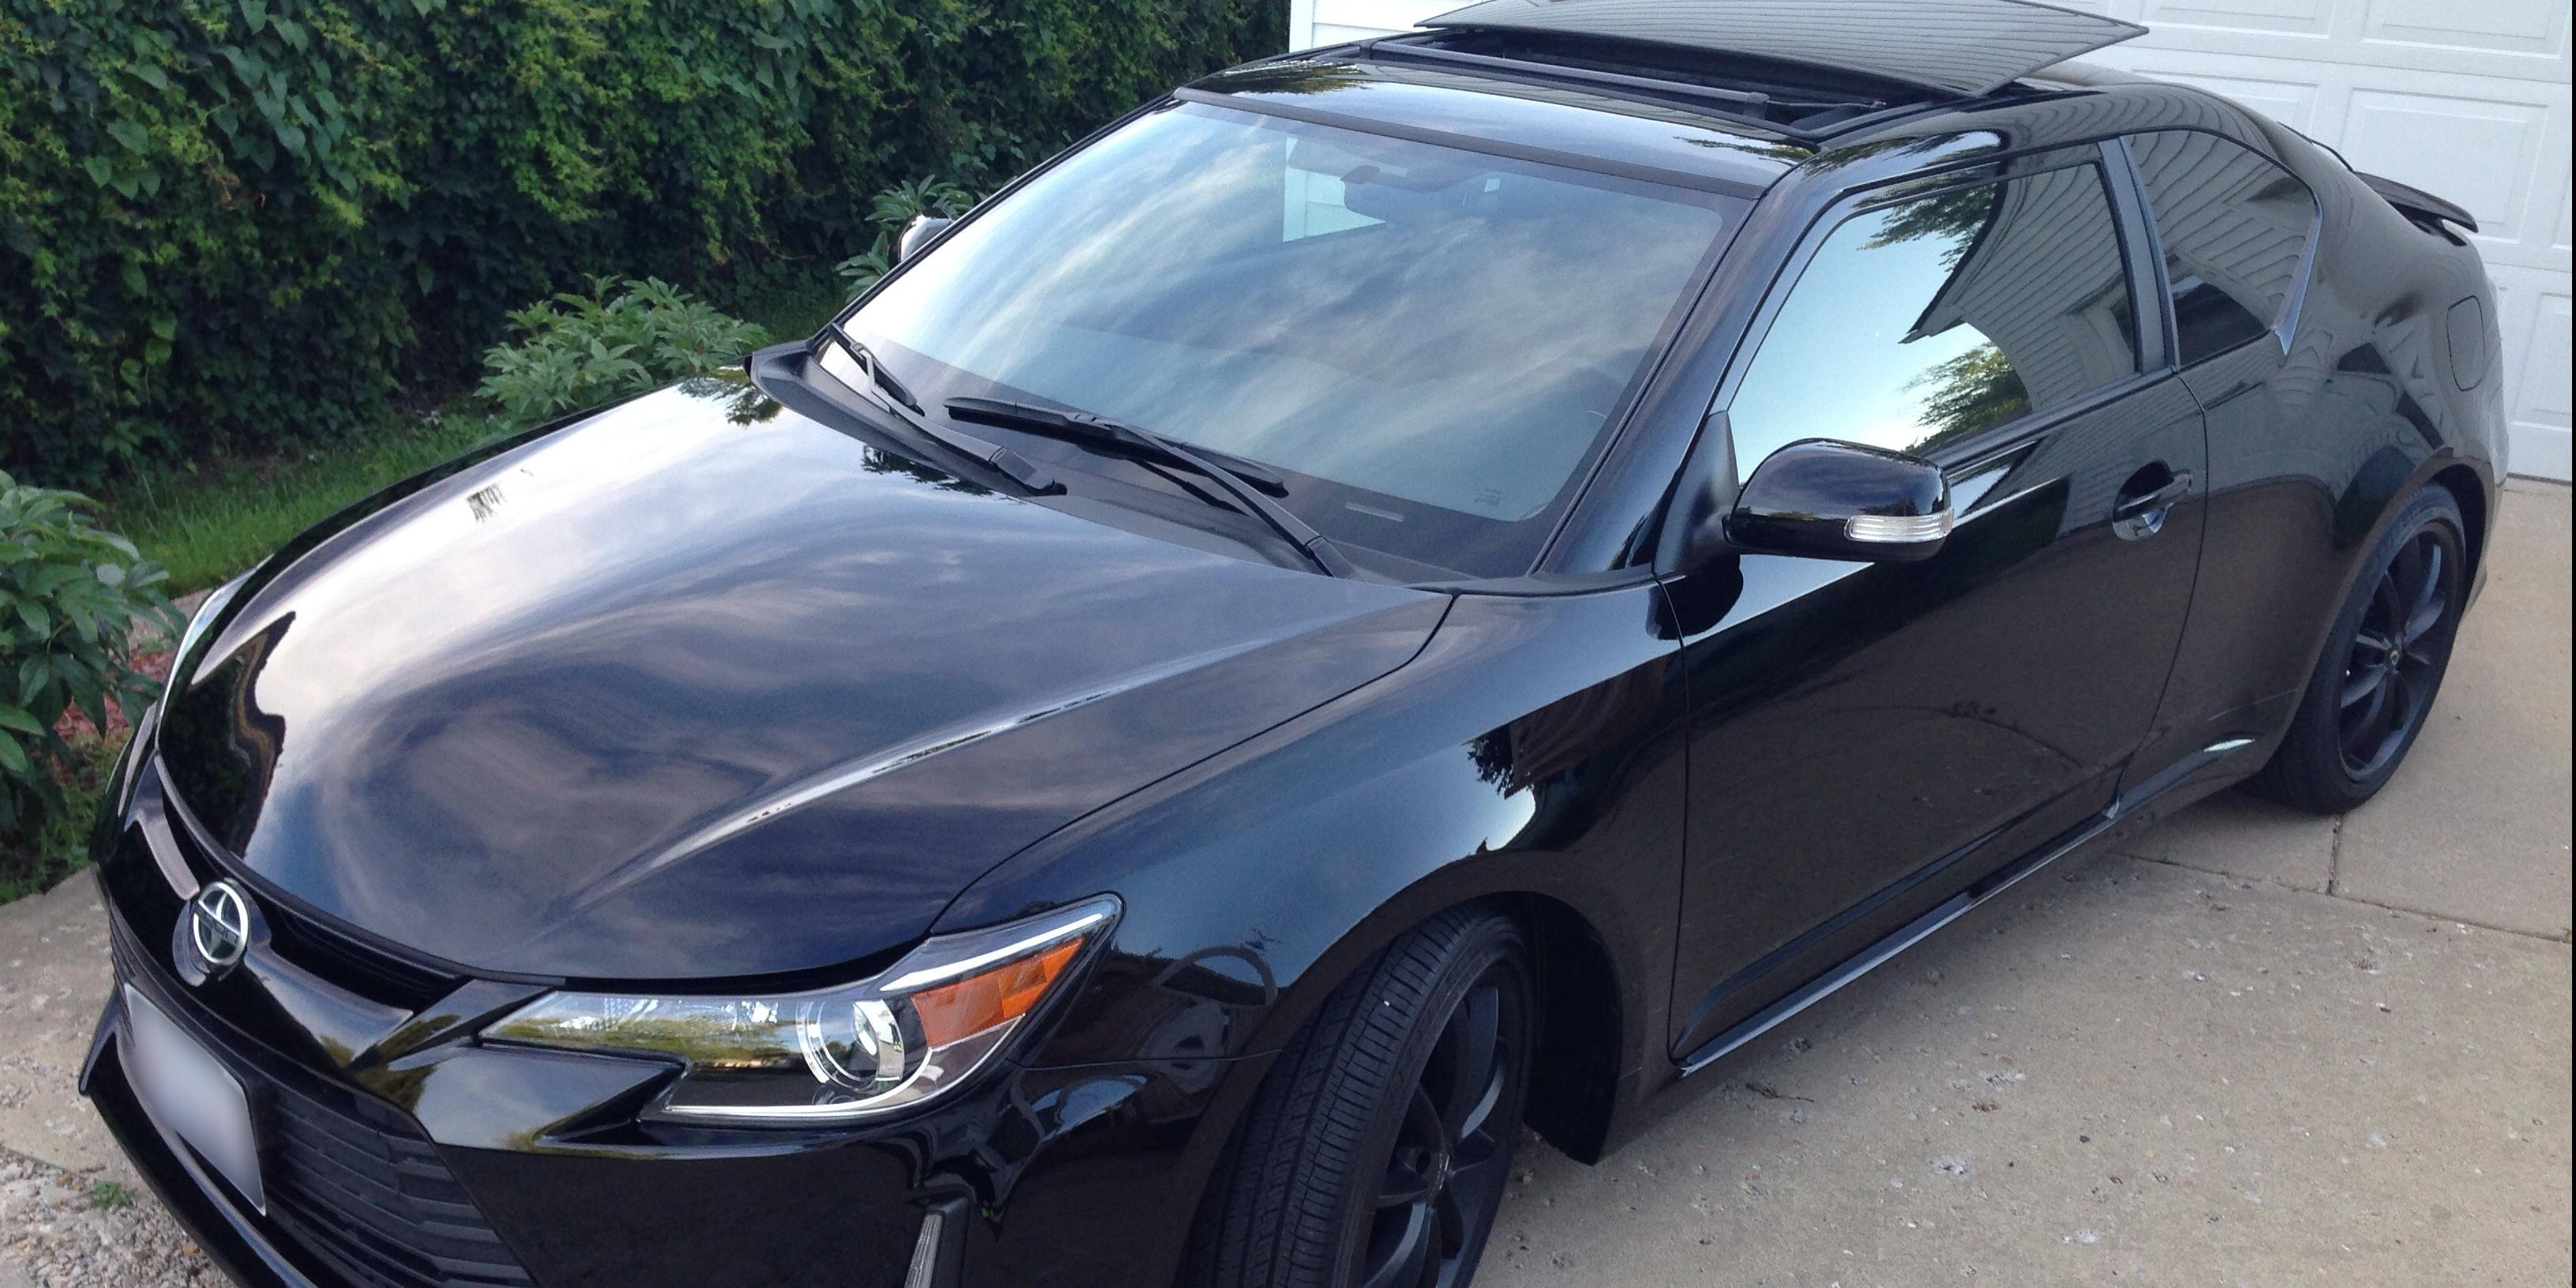 Nomar241's 2014 Scion tC